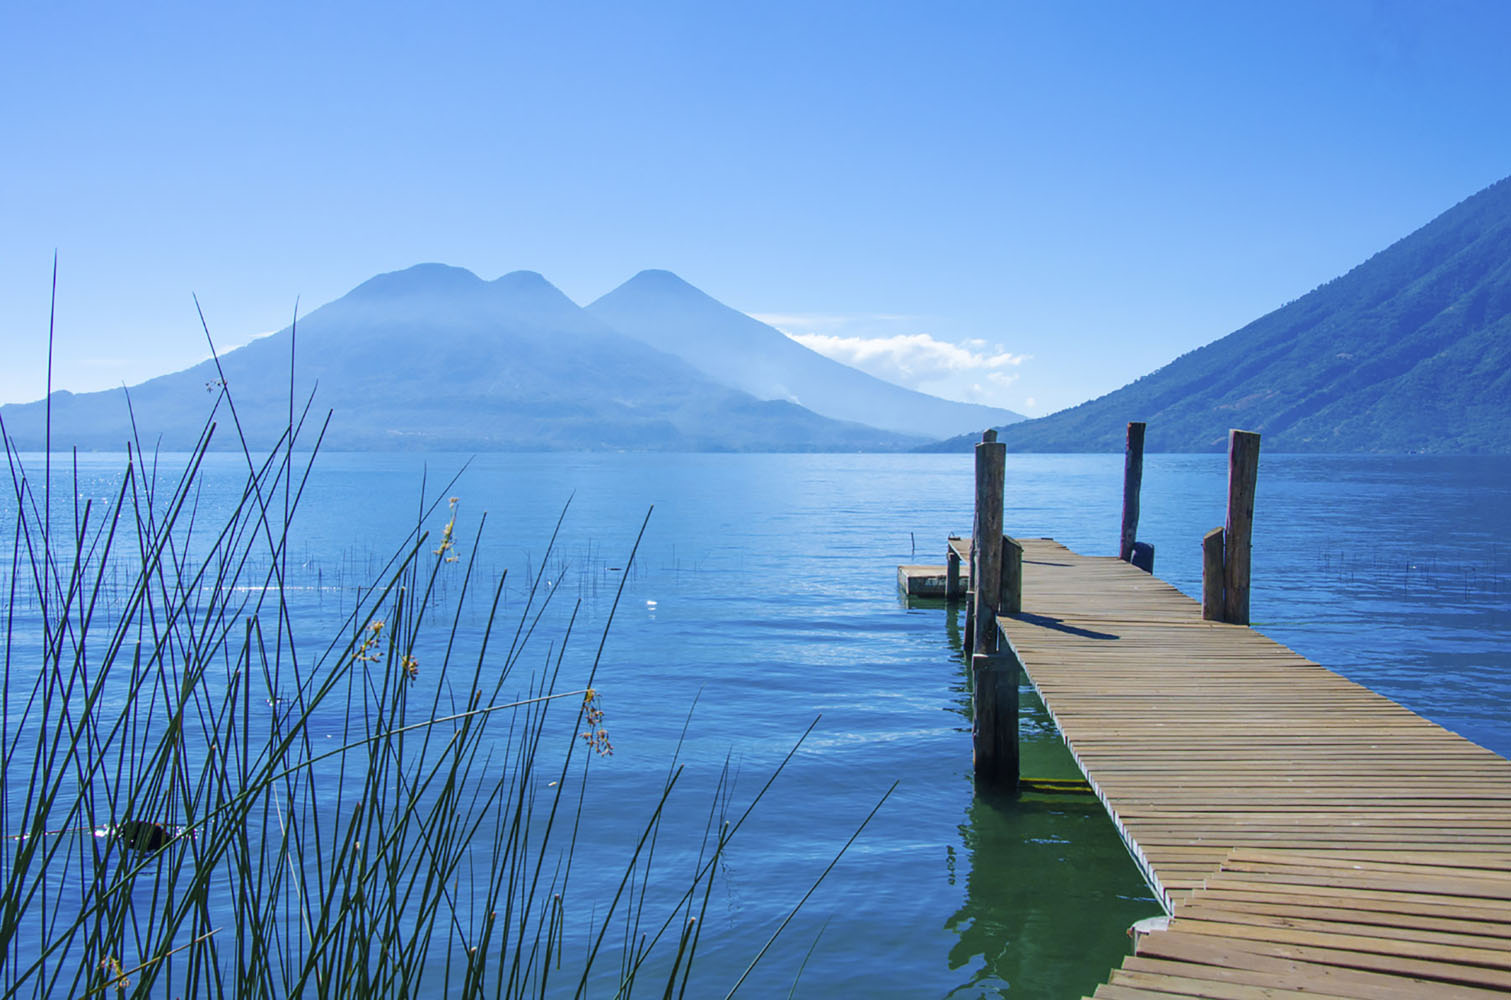 Another must-visit destination for outdoor adventurers and nature lovers is the Guatemala highlands.